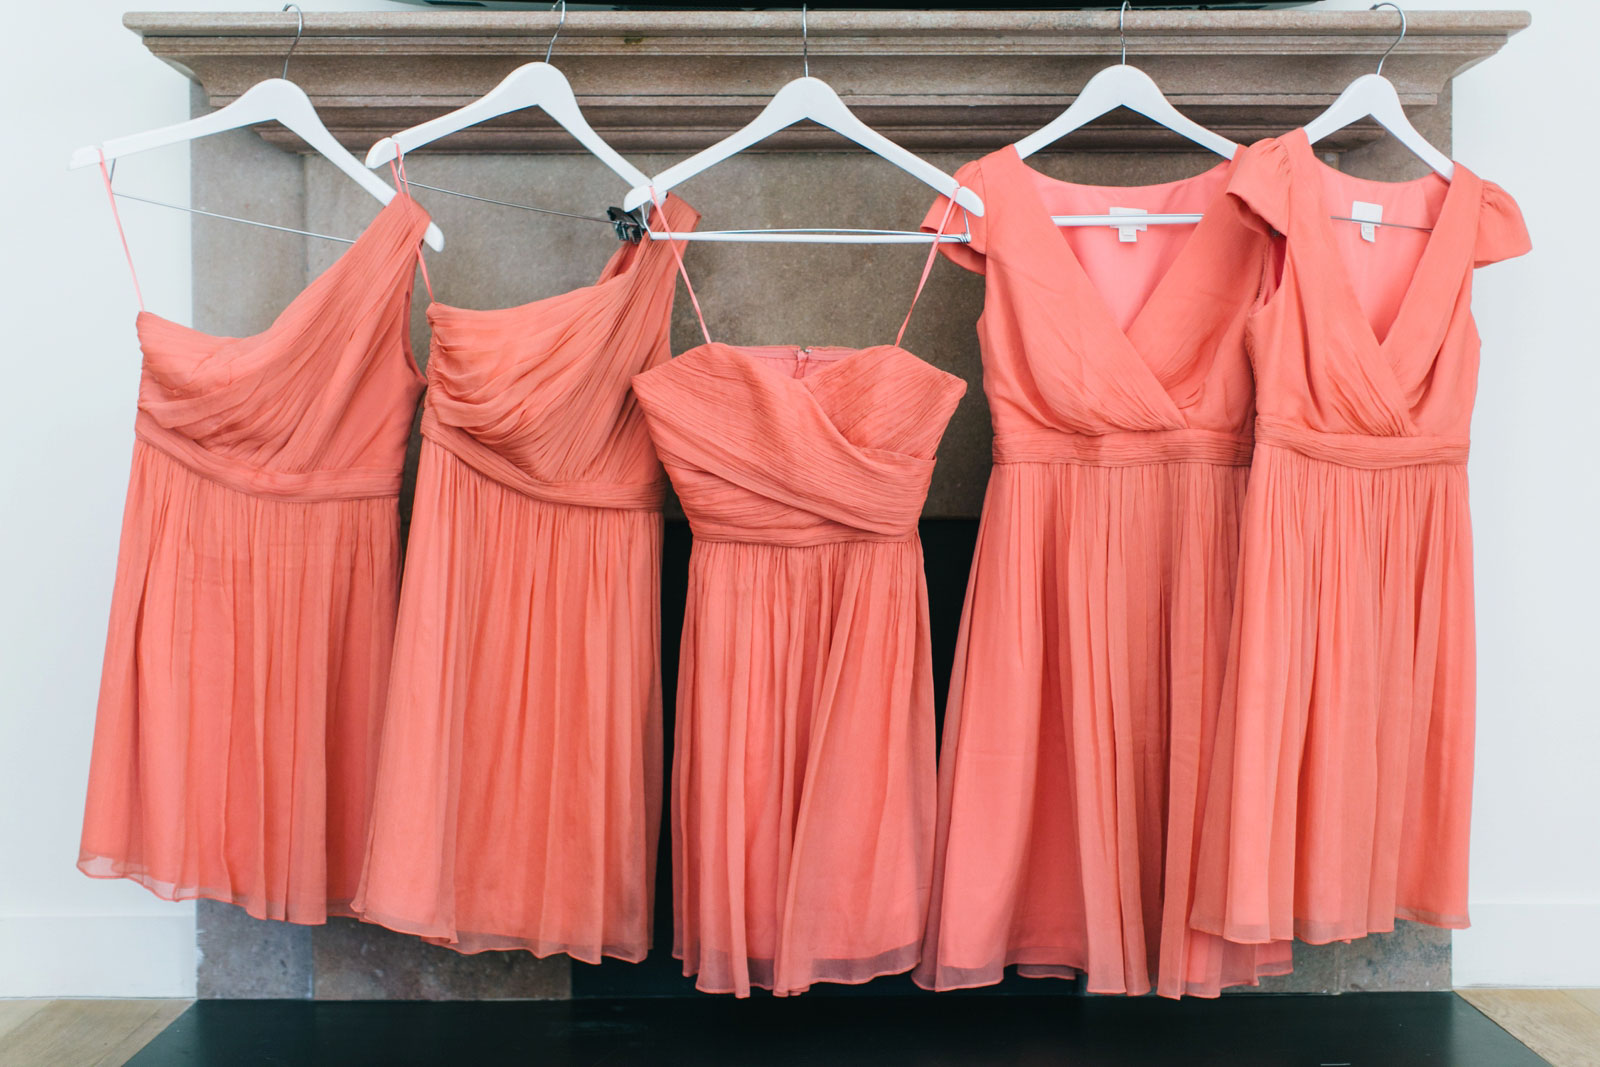 mismatched short salmon pink bridesmaids dresses hanging up in bridal suite at Ames Hotel